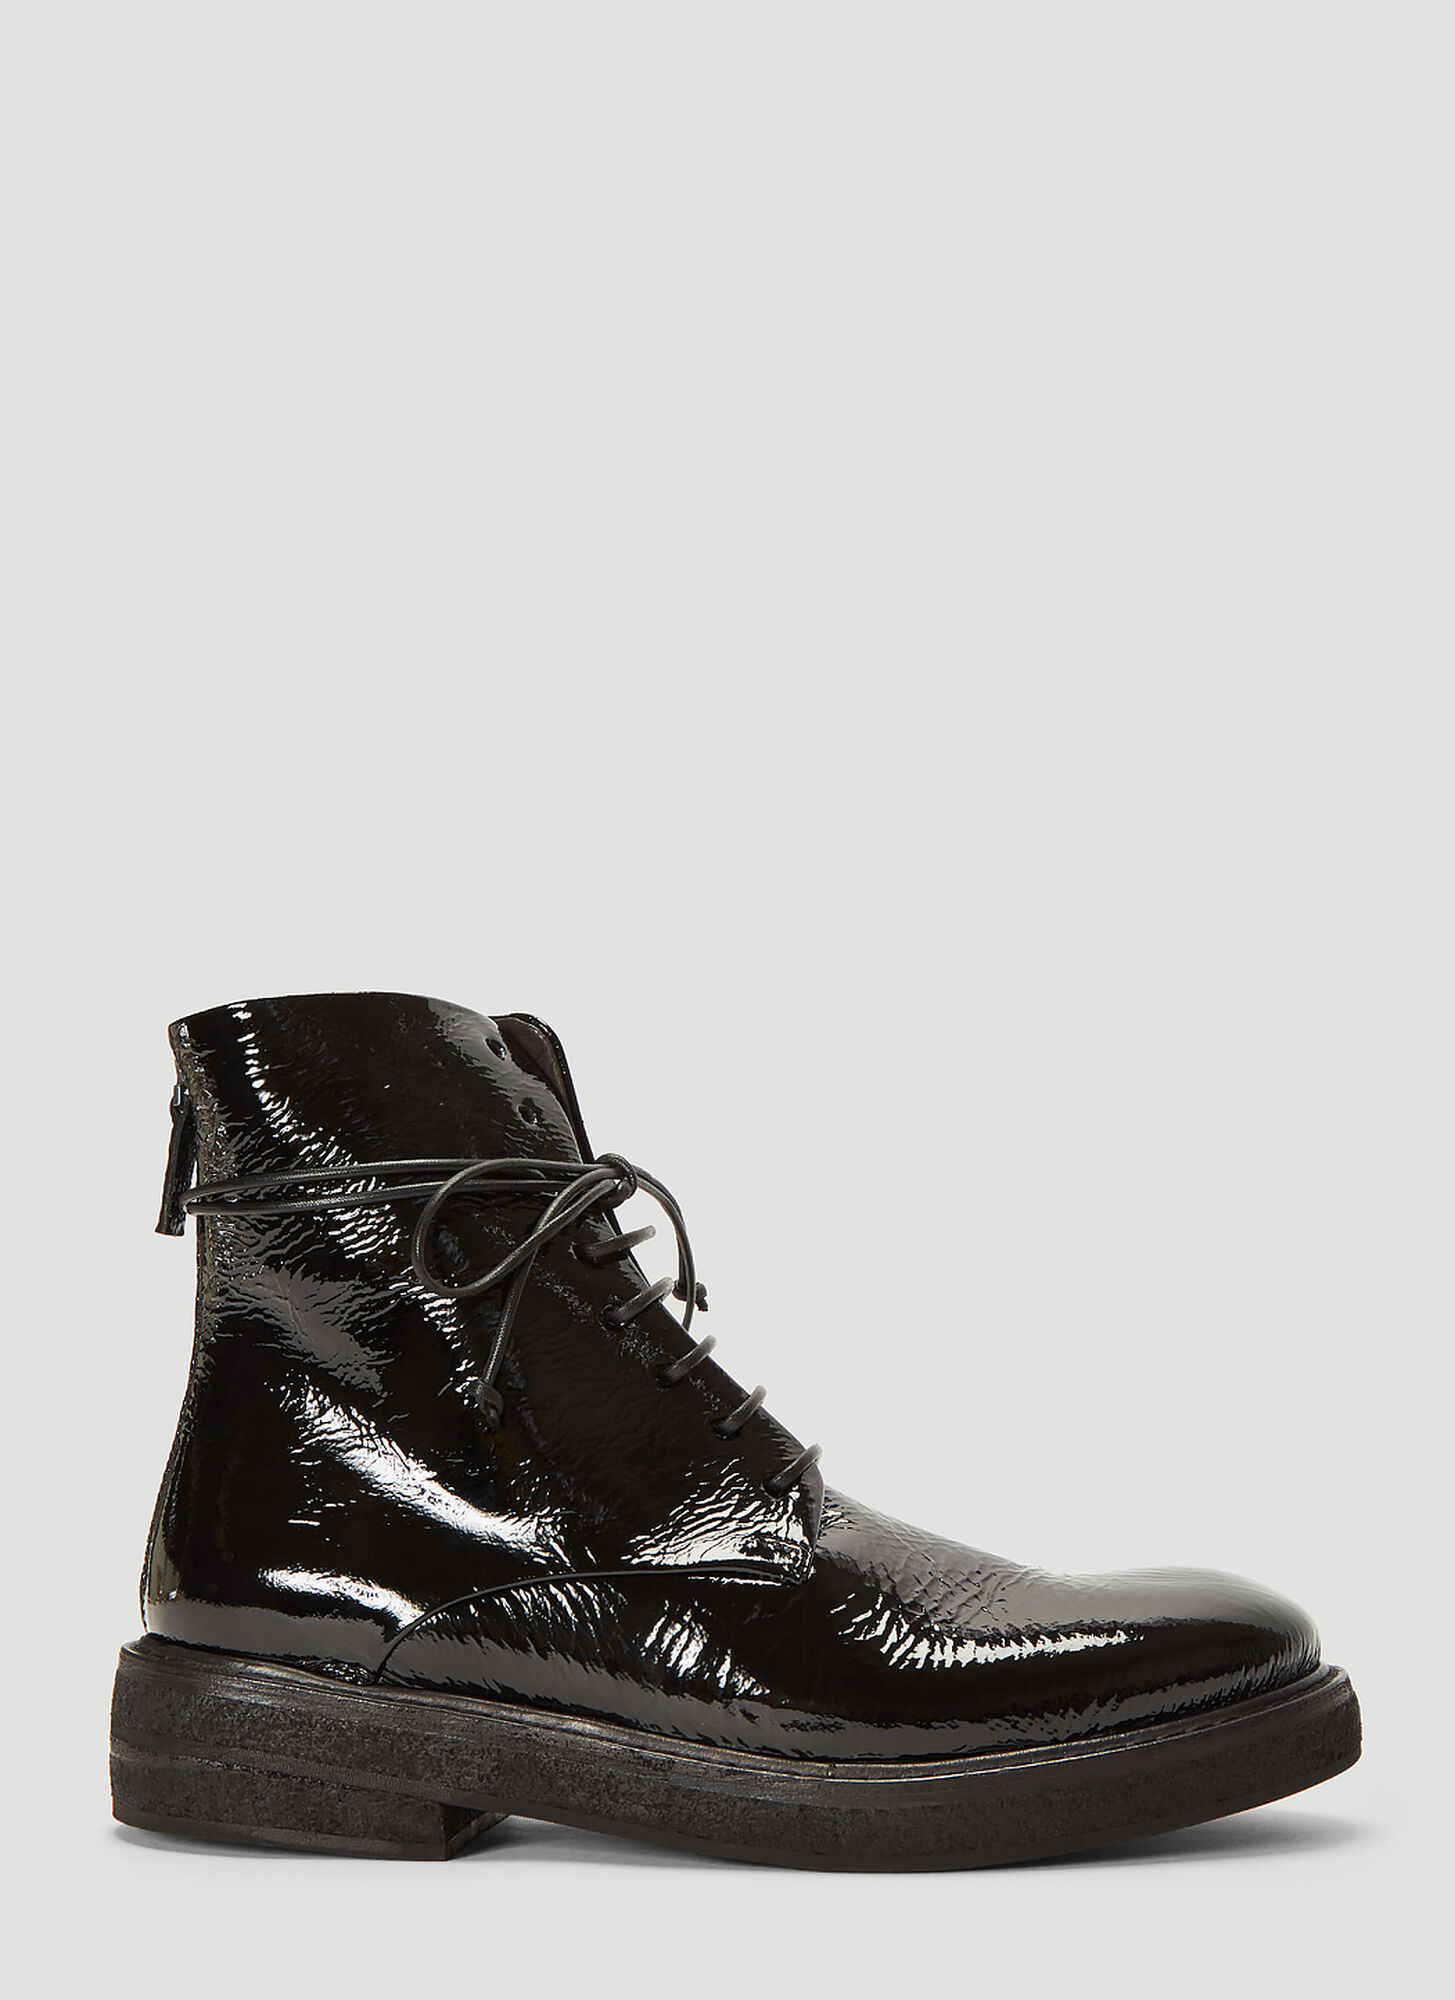 Marsell Parucca Boots in Black